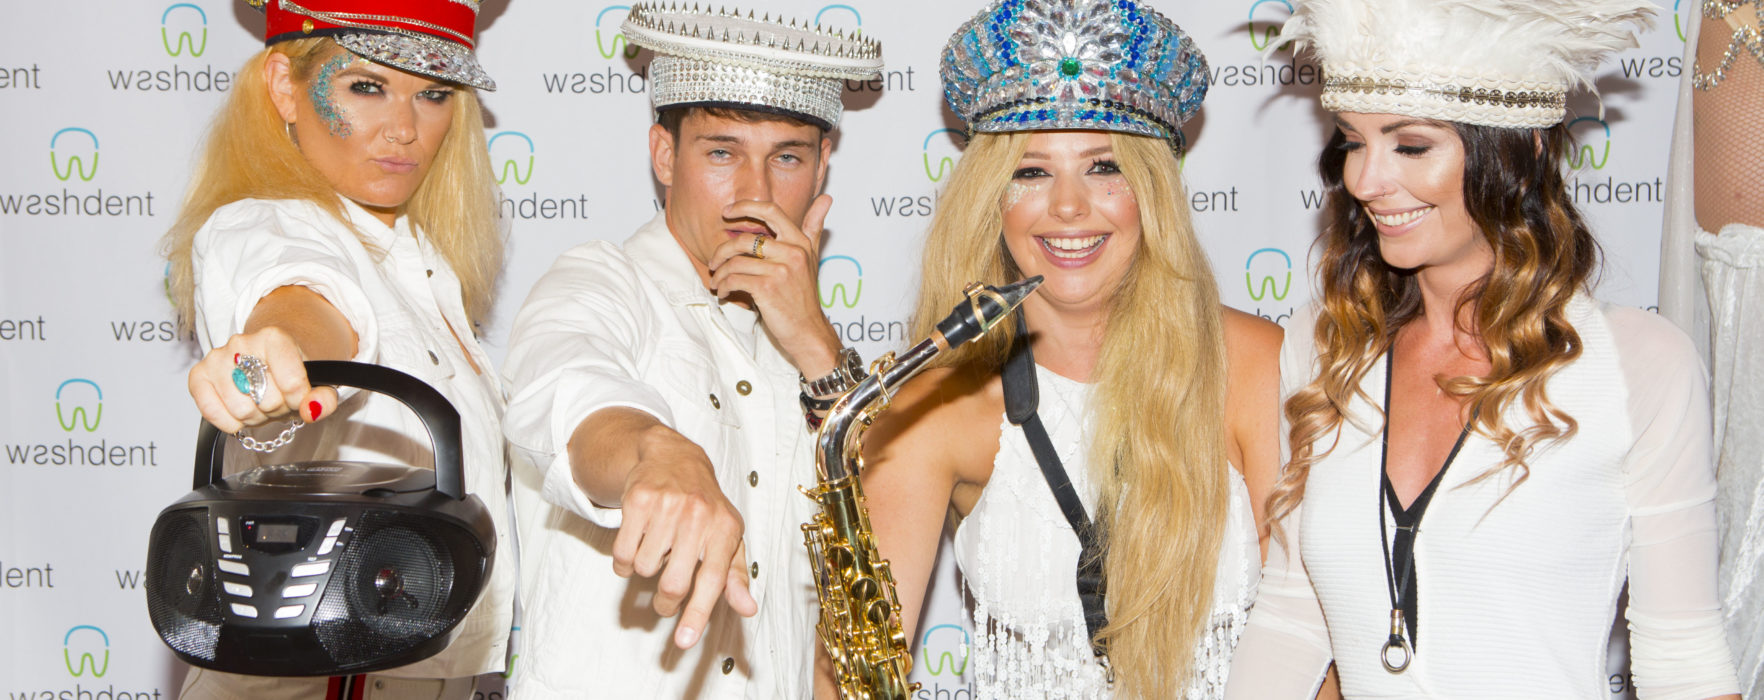 Joey Essex Parties With DJ E.M.A and The Girls That Mix at Washdent White Party Launch